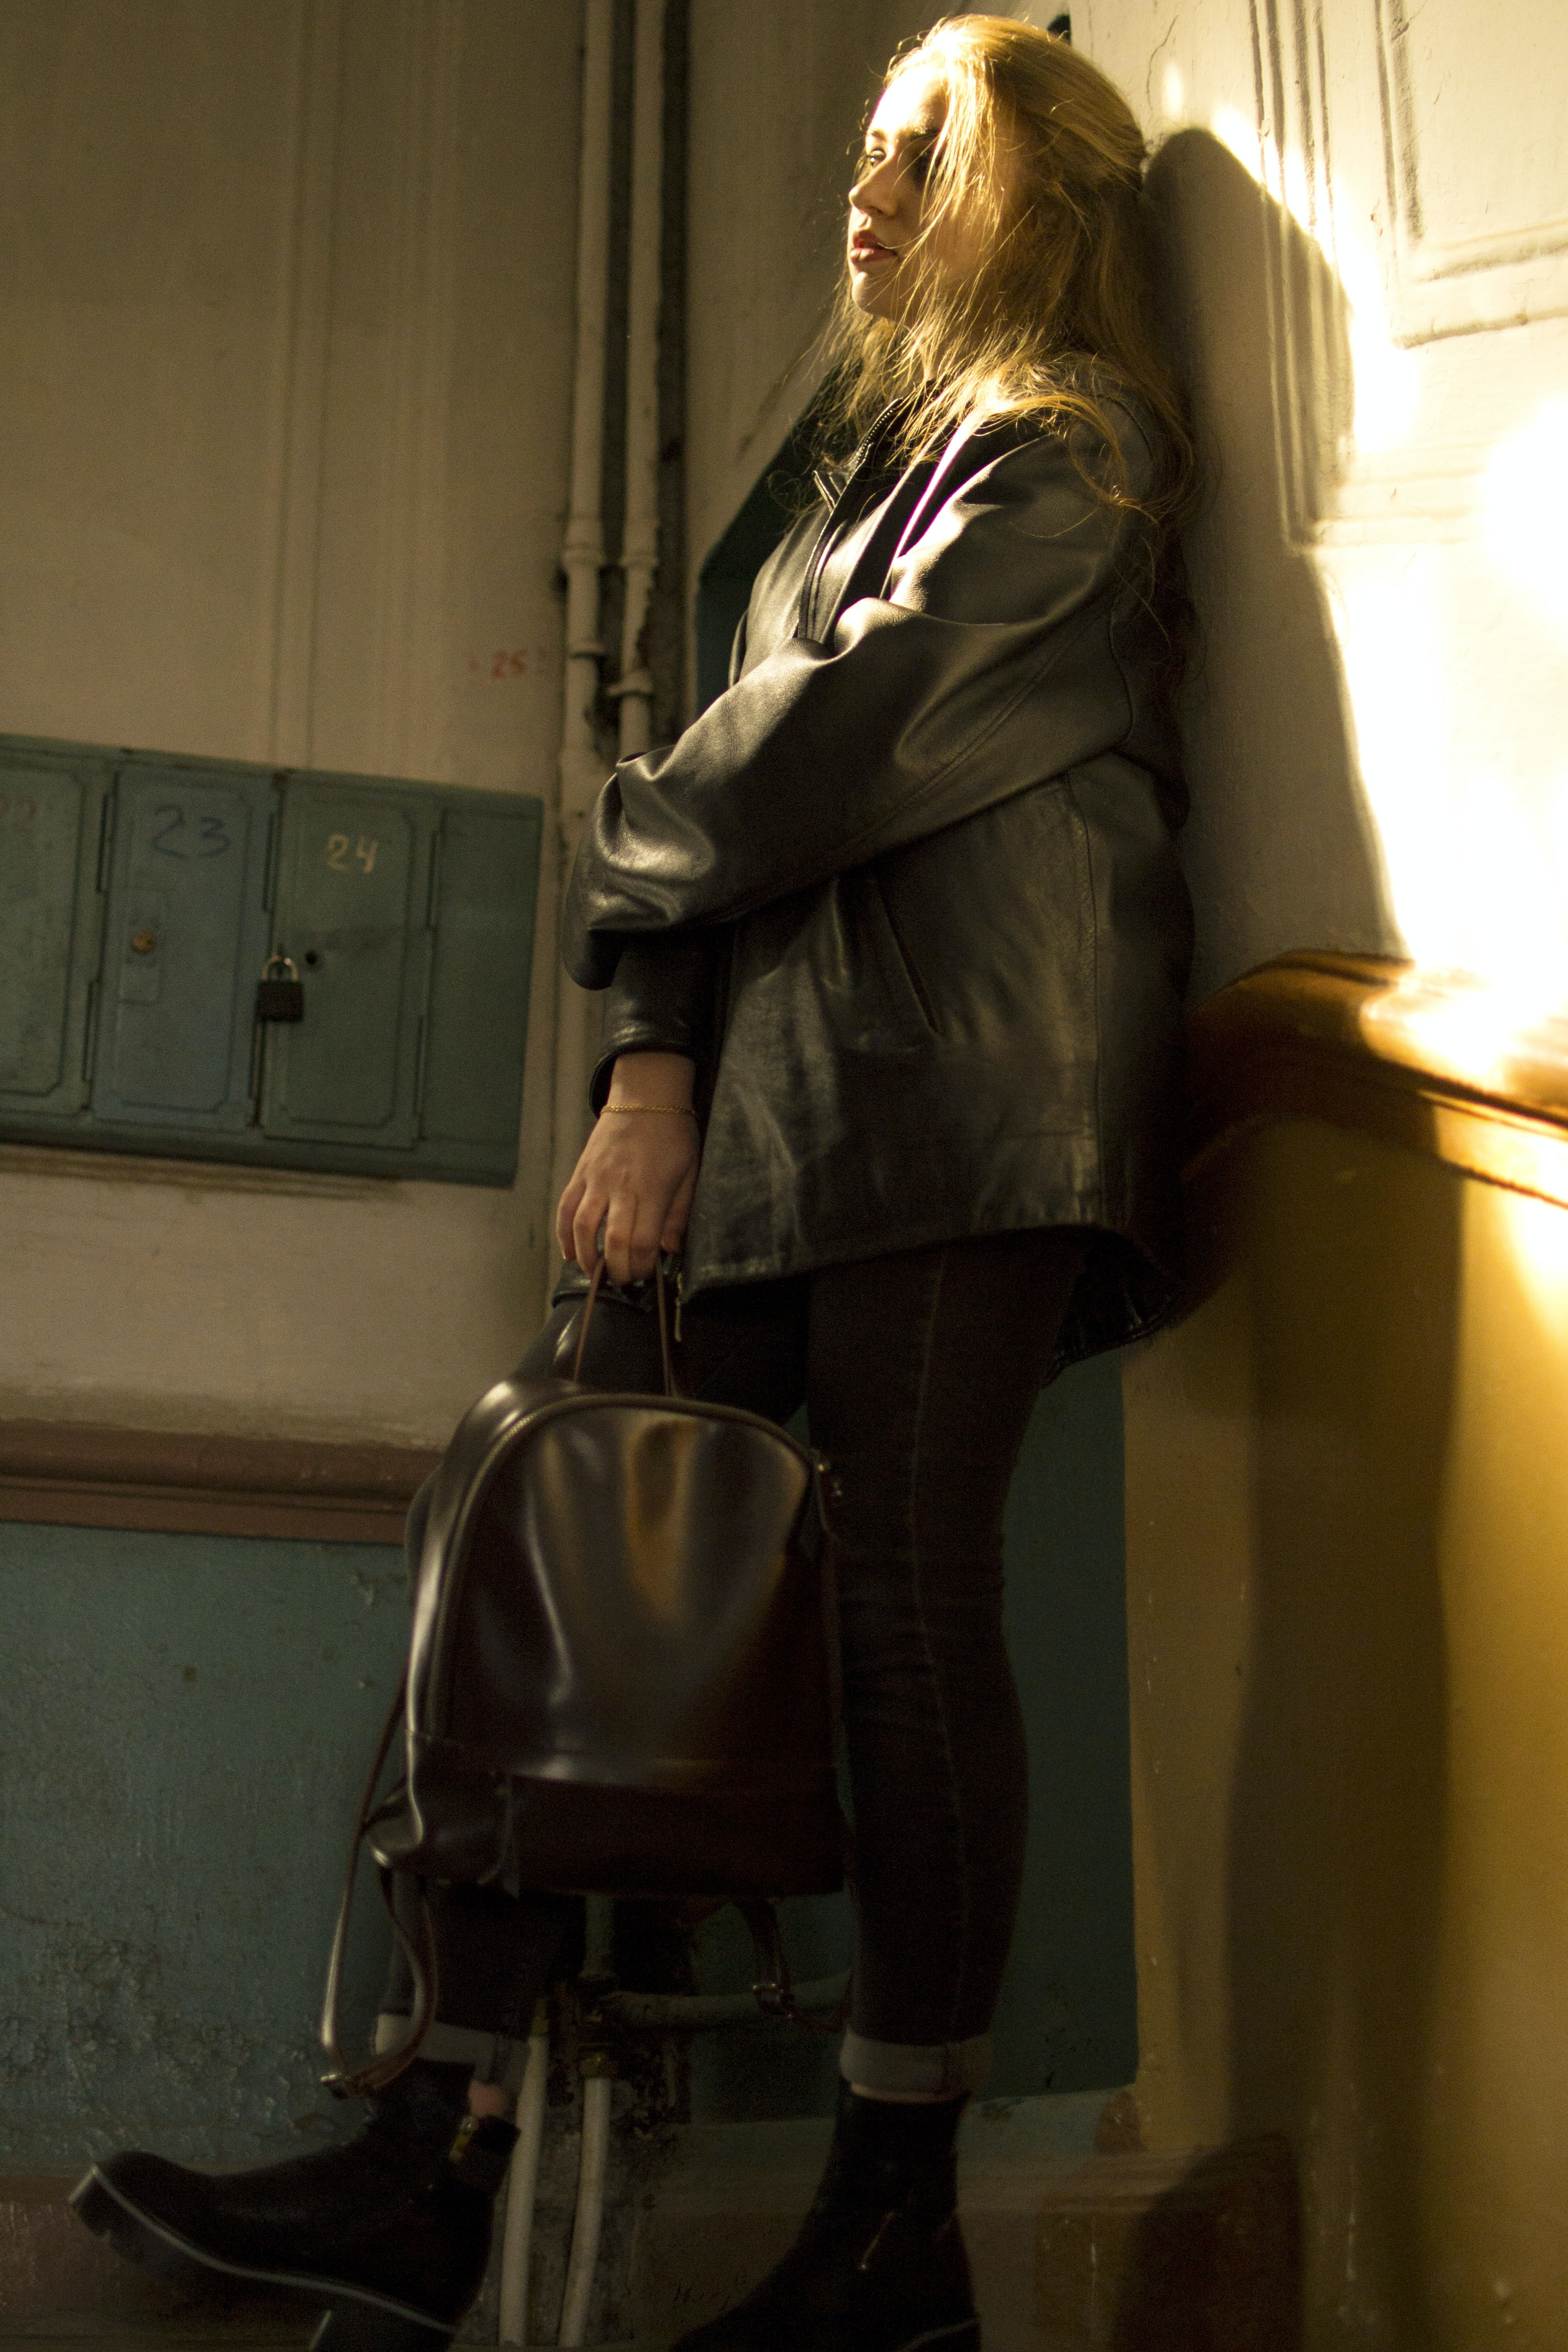 woman carrying bag while leaning on wall